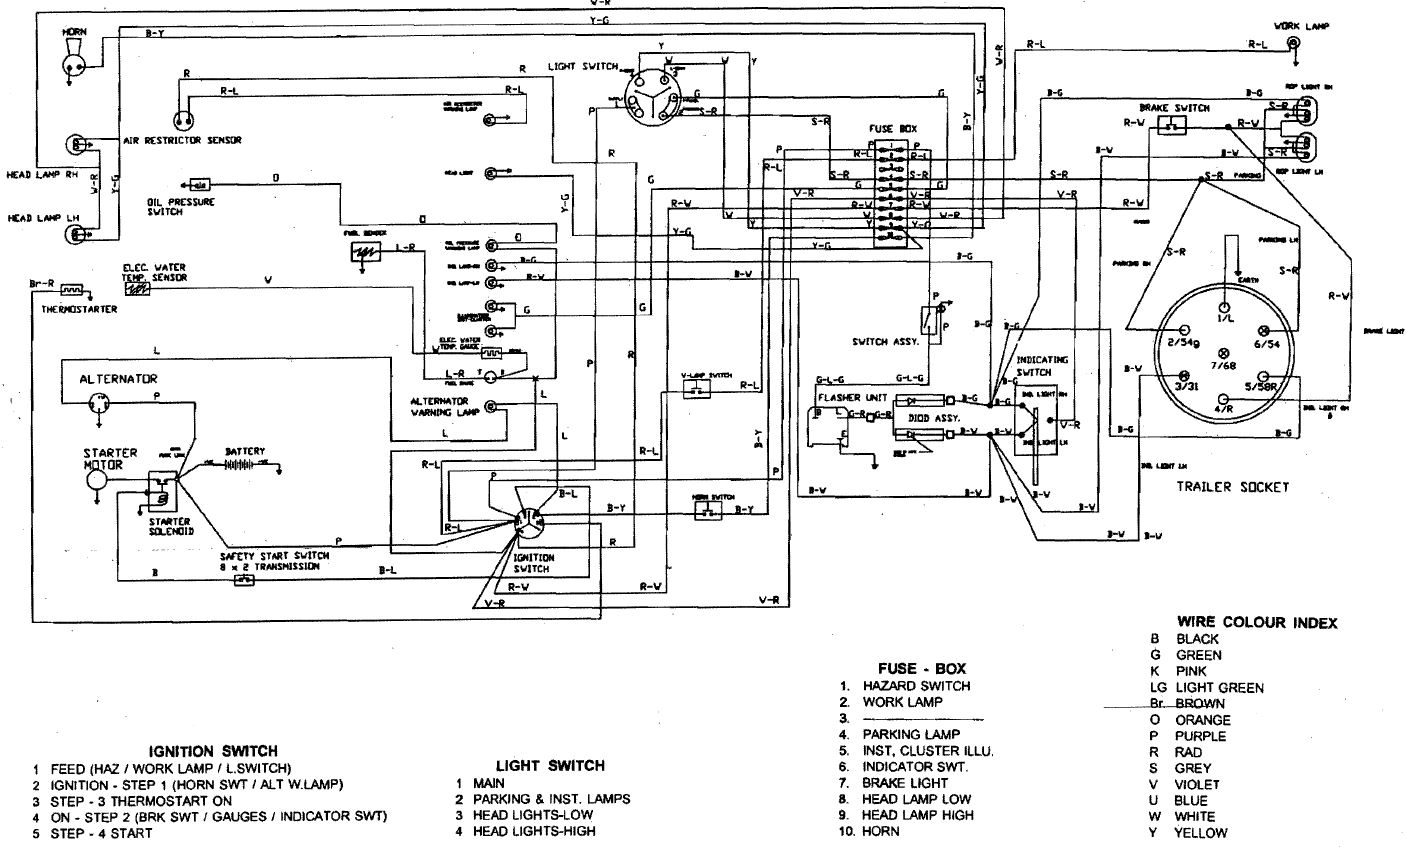 20158463319_b82d524c3d_o ignition switch wiring diagram PTO Switch Wiring Diagram for Massey Furgeson at panicattacktreatment.co